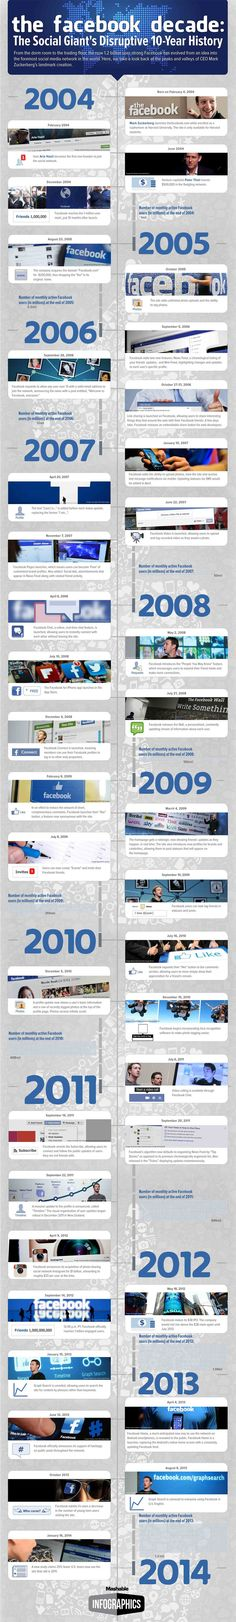 10 Years of Facebook, the history of a Social Giant an #infographic